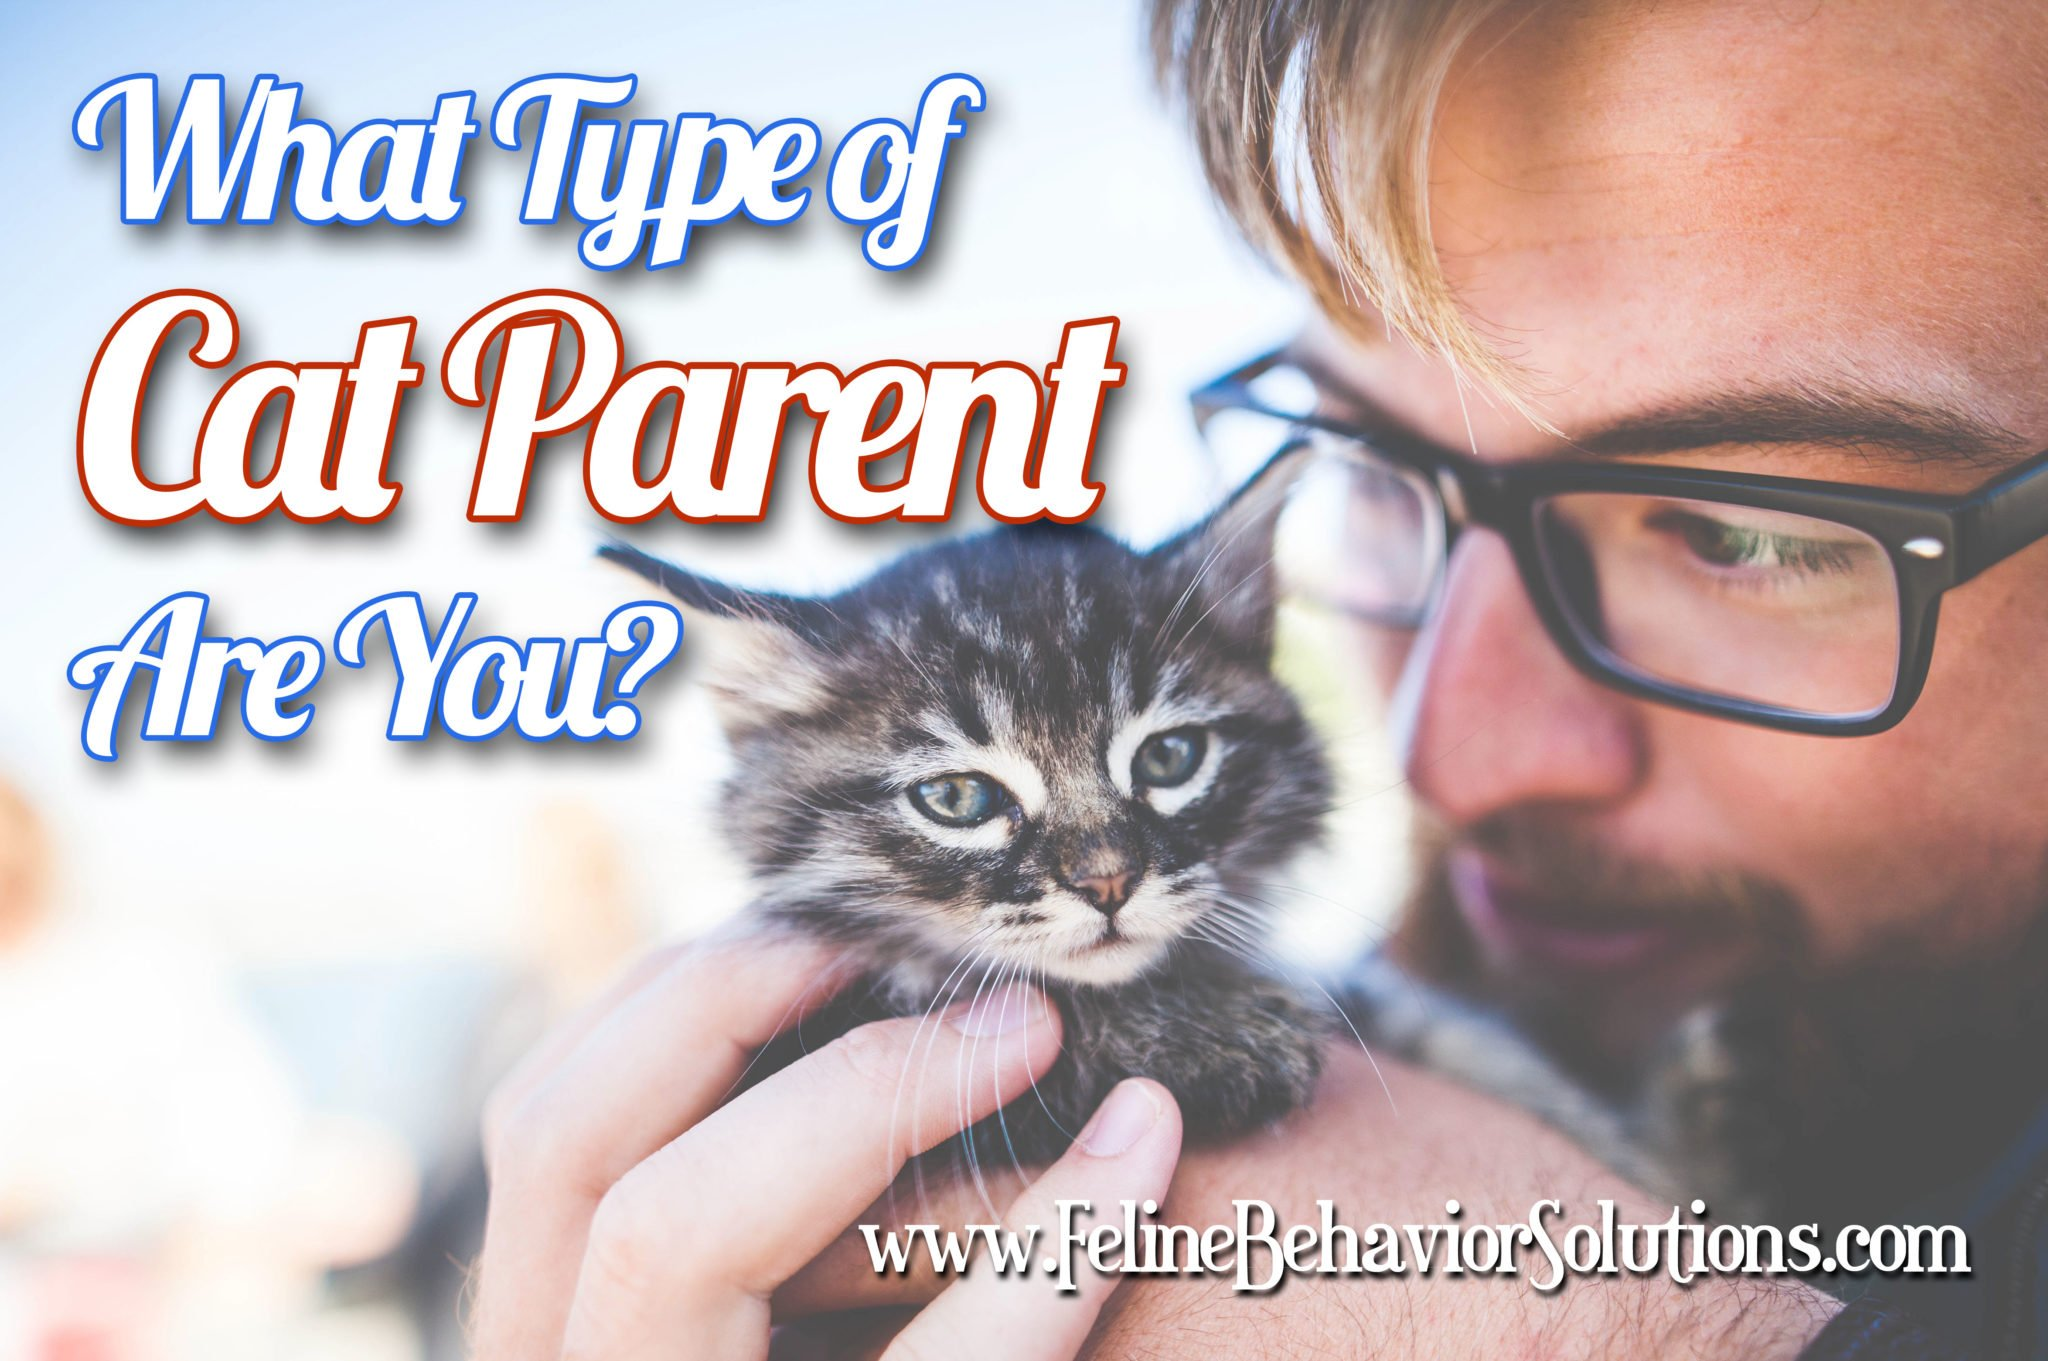 Type of Cat Parent